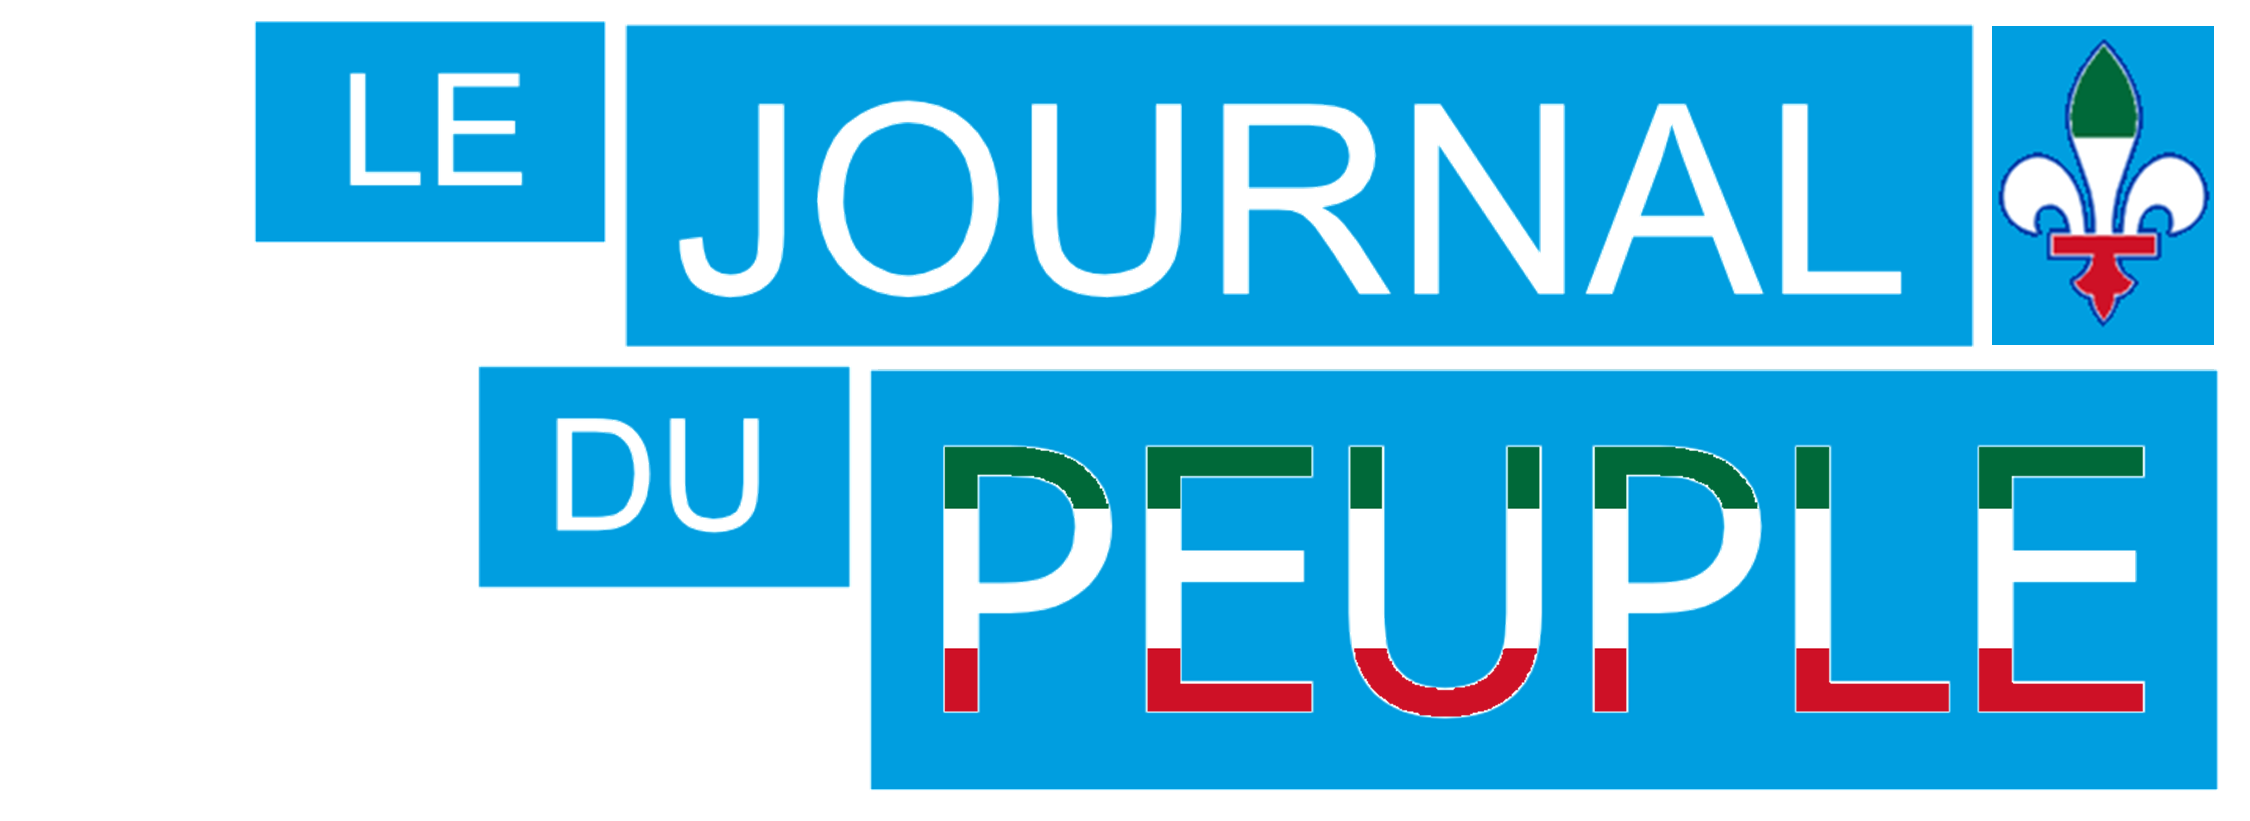 image Le Journal Du Peuple